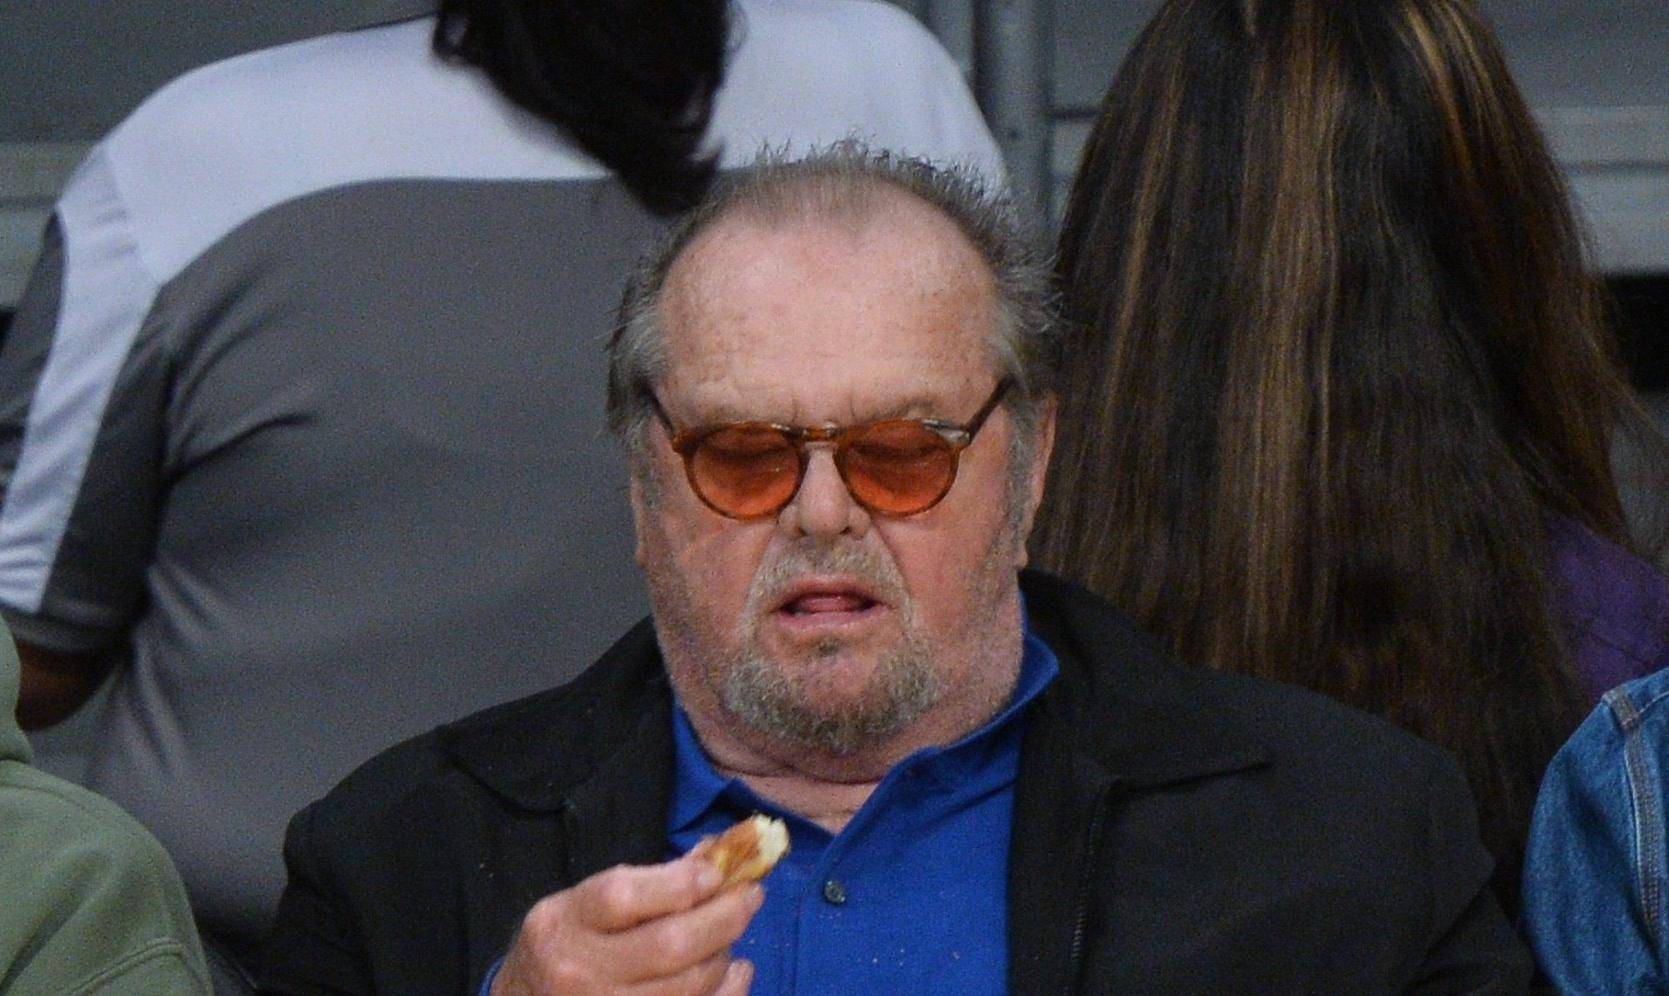 Jack Nicholson and Floyd Mayweather get the munchies at the Lakers vs. Clippers game